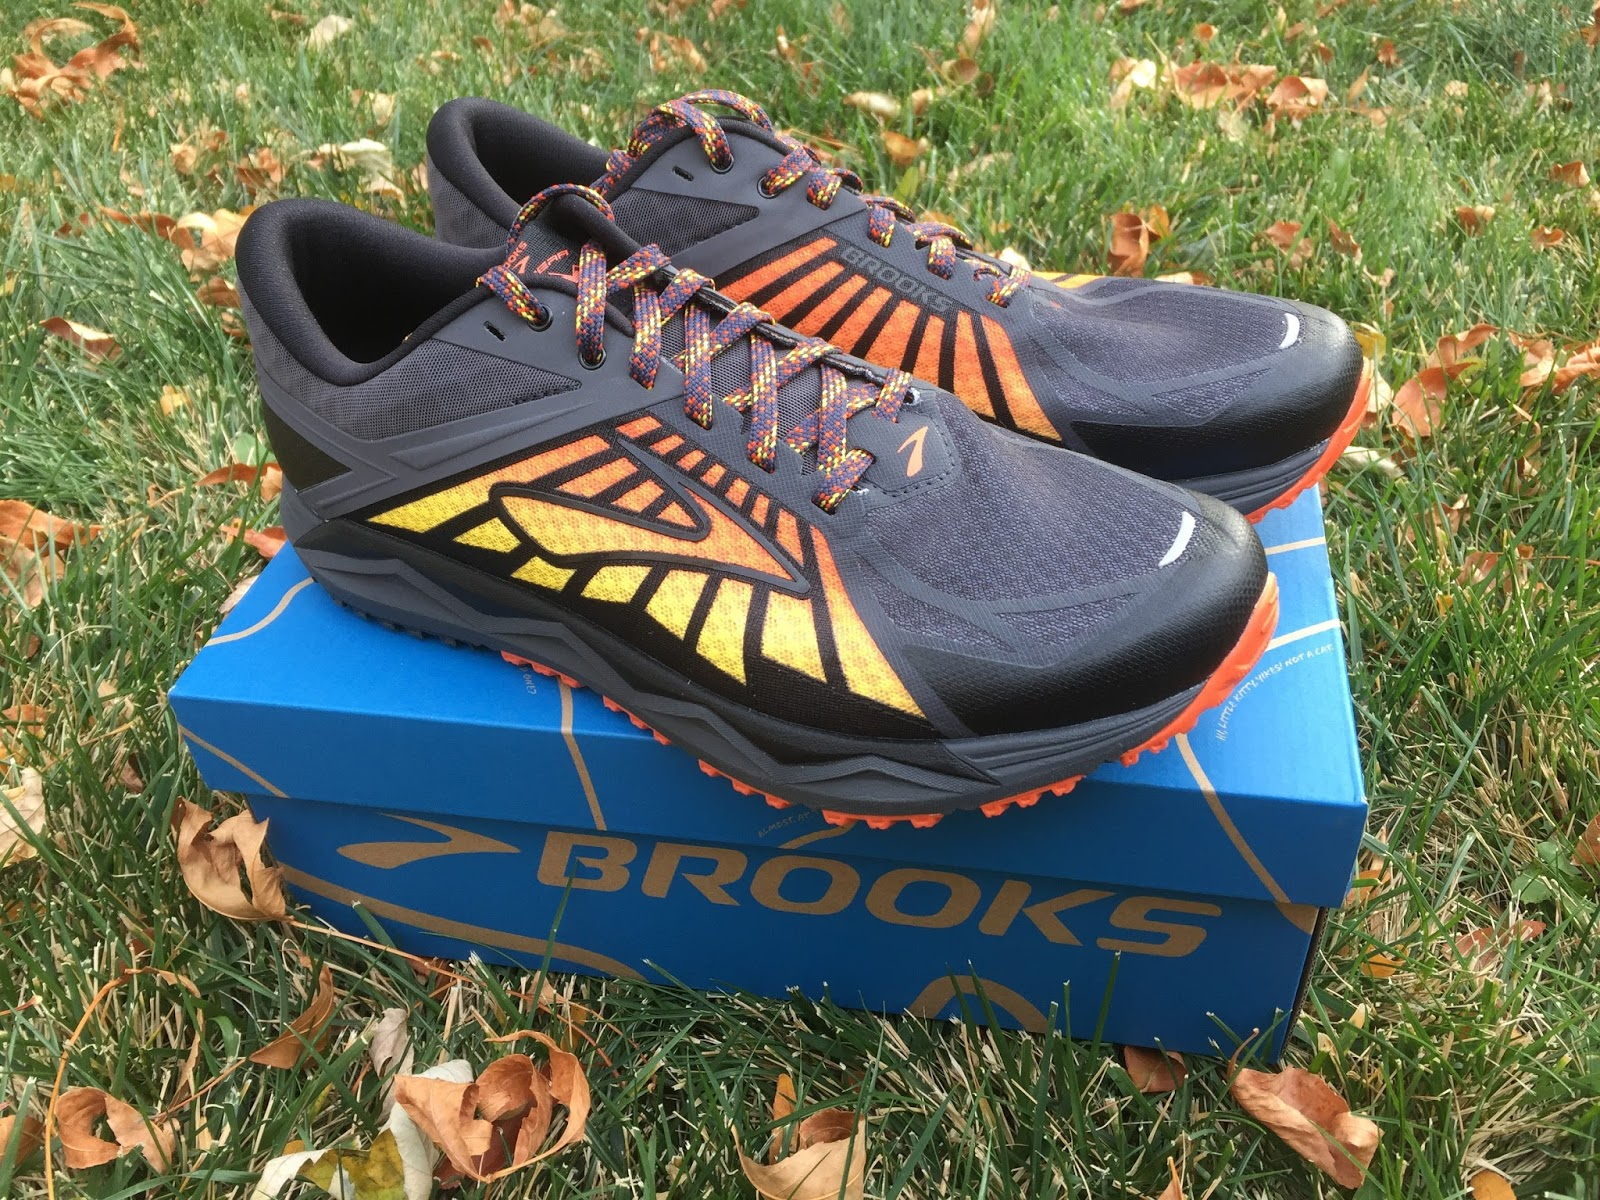 f661b82b69988 (10 1/4 for my size 10) fills a long overdue niche in the Brooks trail shoe  line, a shoe that is lighter, more flexible and more ...